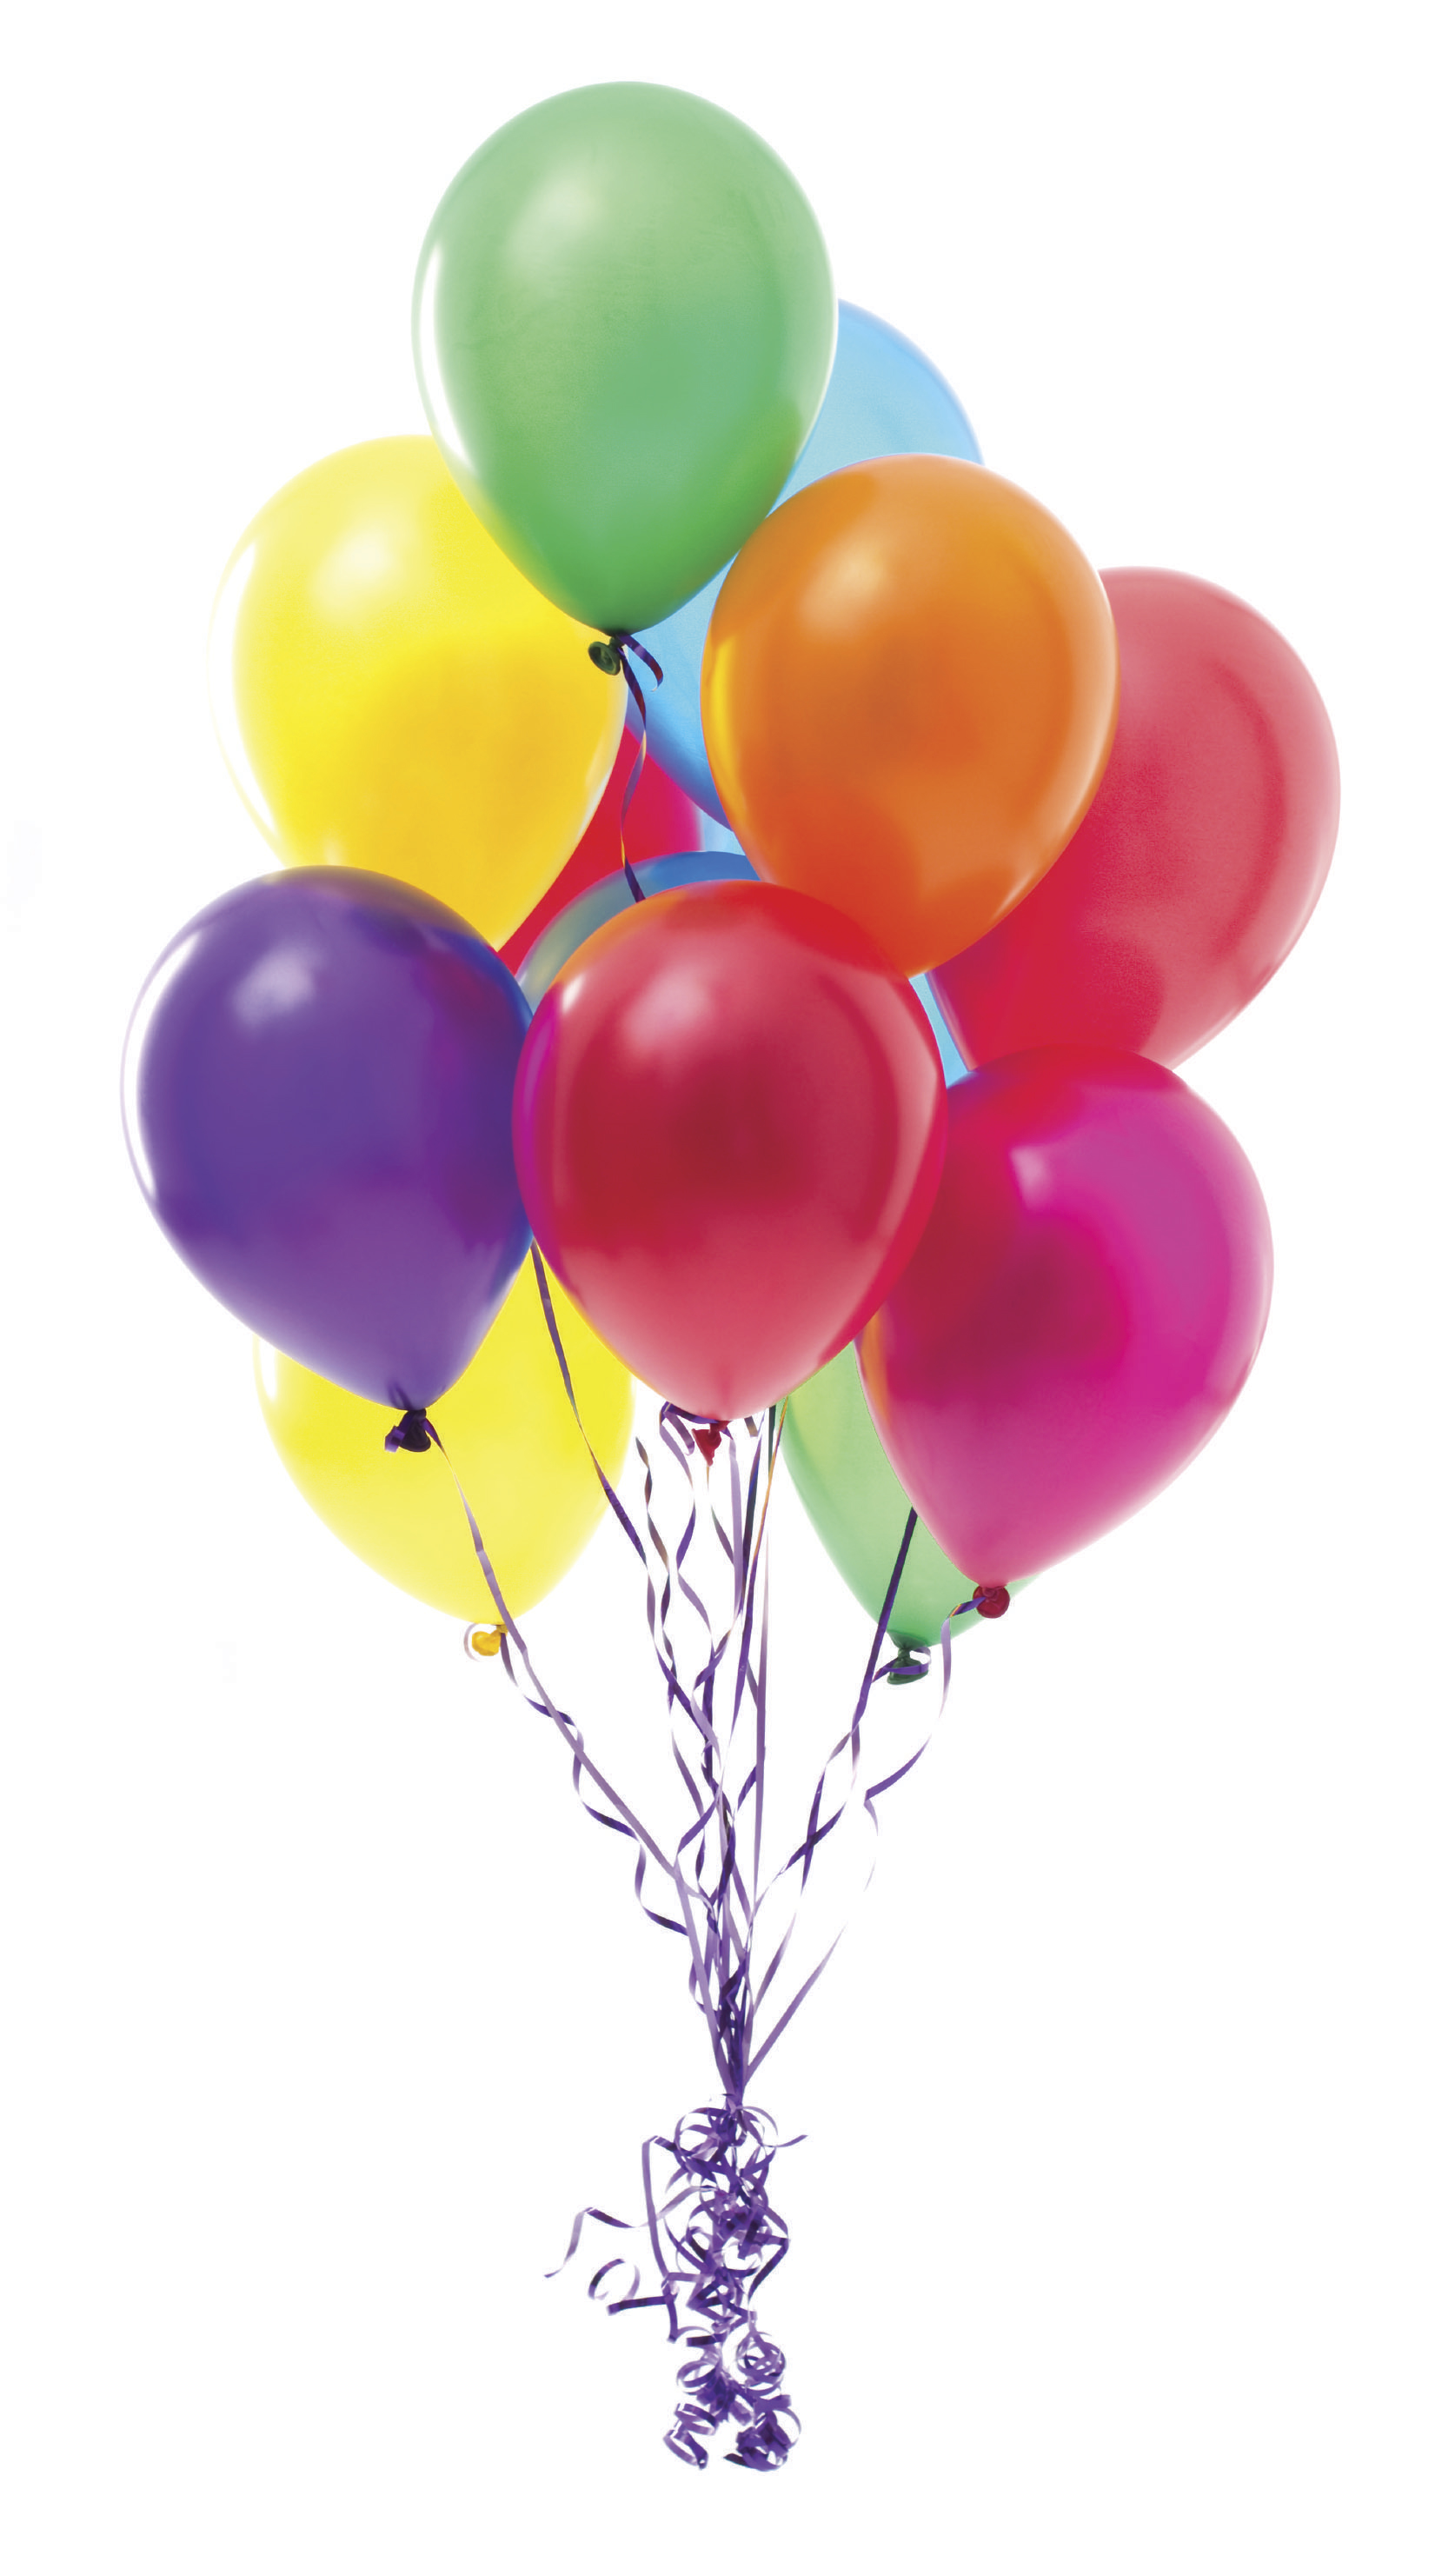 Ballons Balloons Rsvp Food And Party Outlet